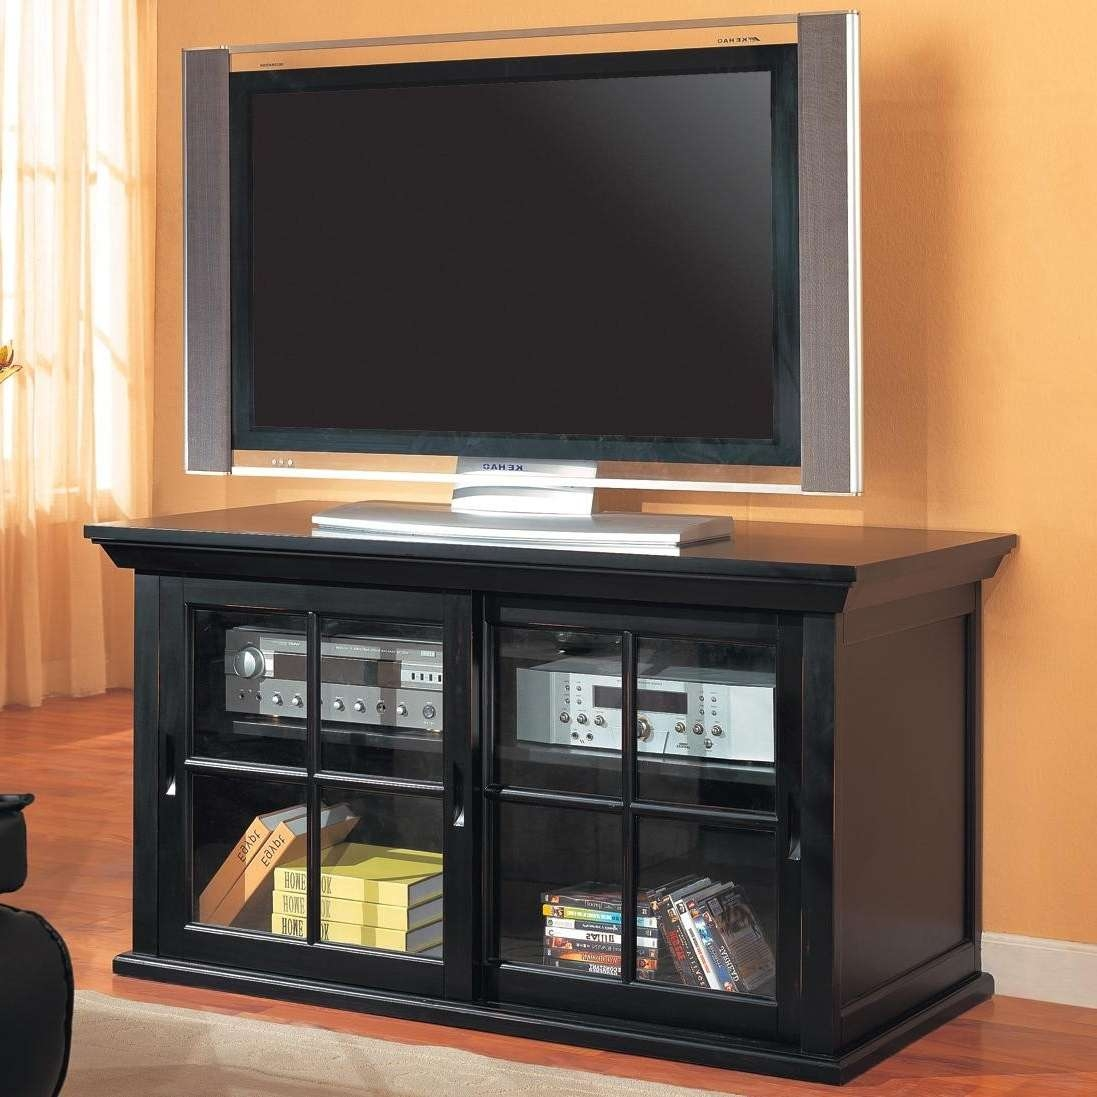 Small Tv Cabinets With Glass Doors • Cabinet Doors Throughout Glass Tv Cabinets With Doors (View 16 of 20)